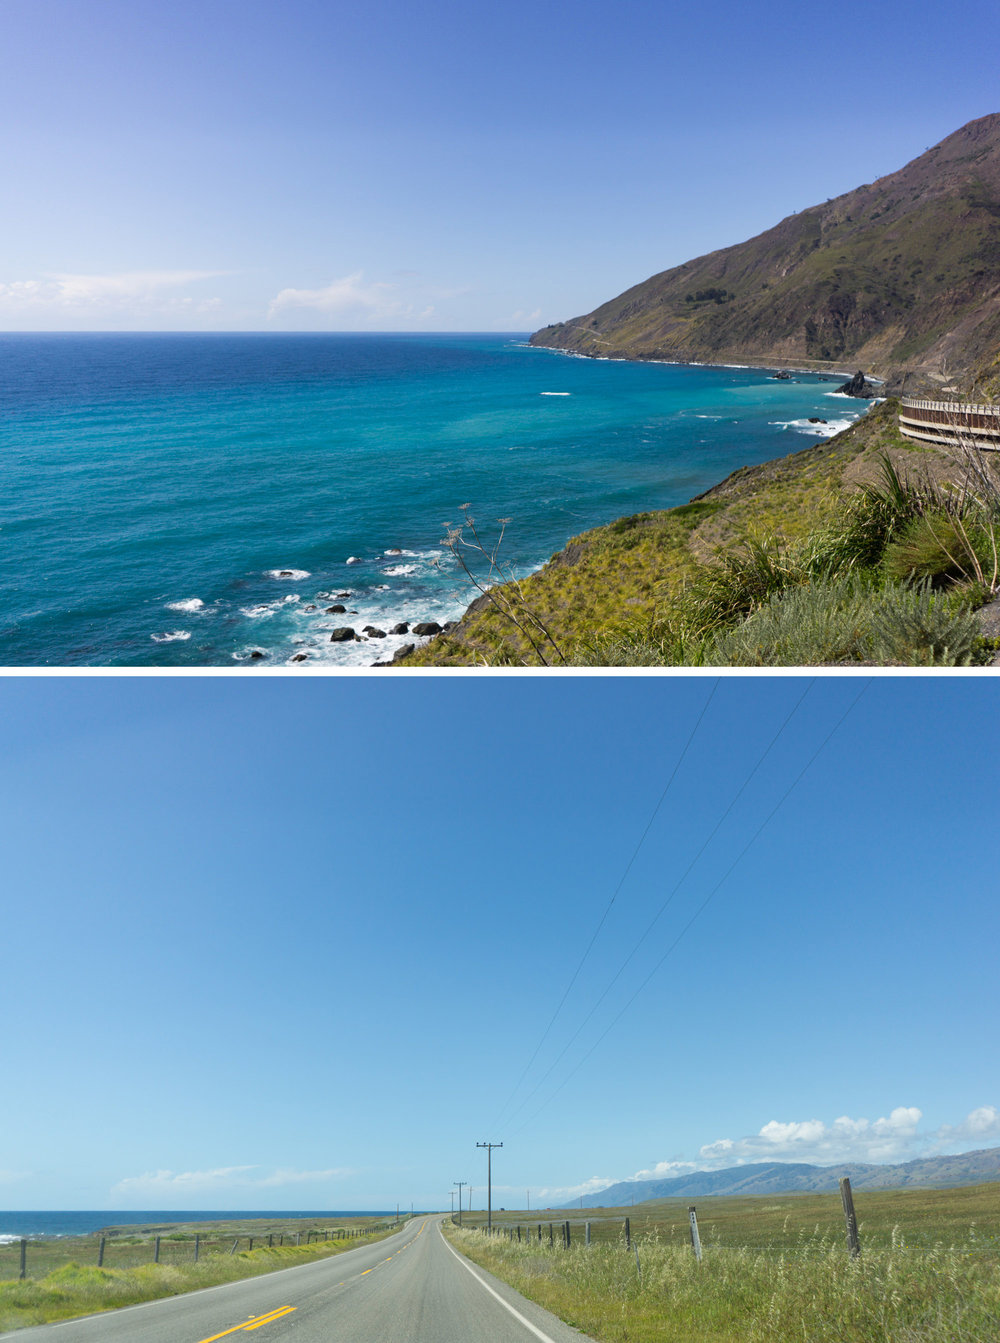 Pacific Coast Highway Road Trip Guide | California Road Trip Tips | Sharing the travel route and great places to visit on an LA to San Francisco road trip.